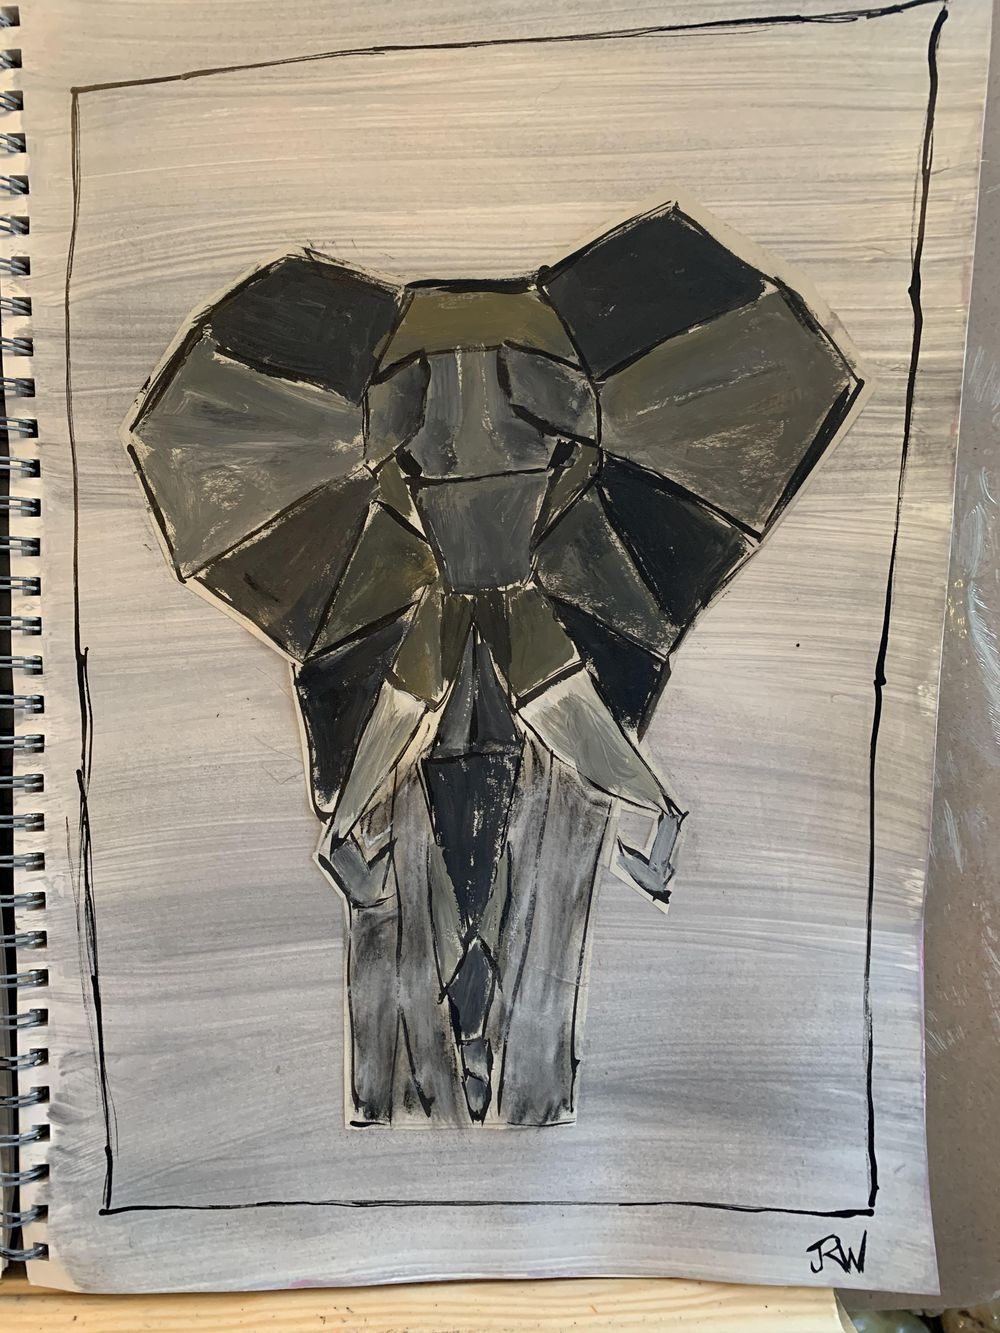 Abstract animals - image 21 - student project